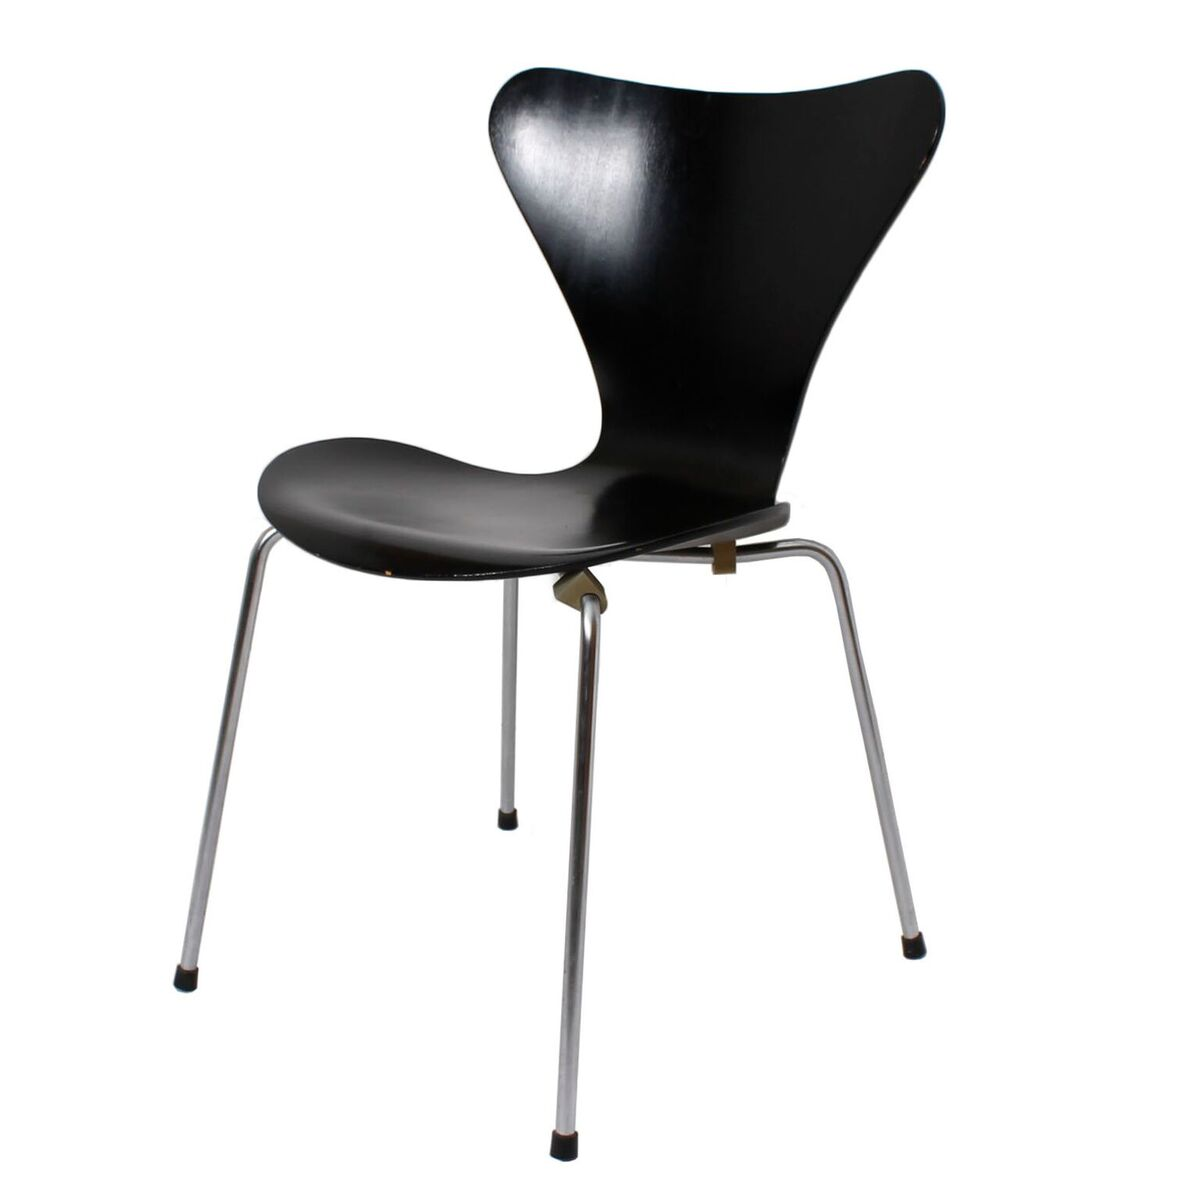 Arne Jacobsen c. 1966 Fritz Hansen Black Series 7 Chair